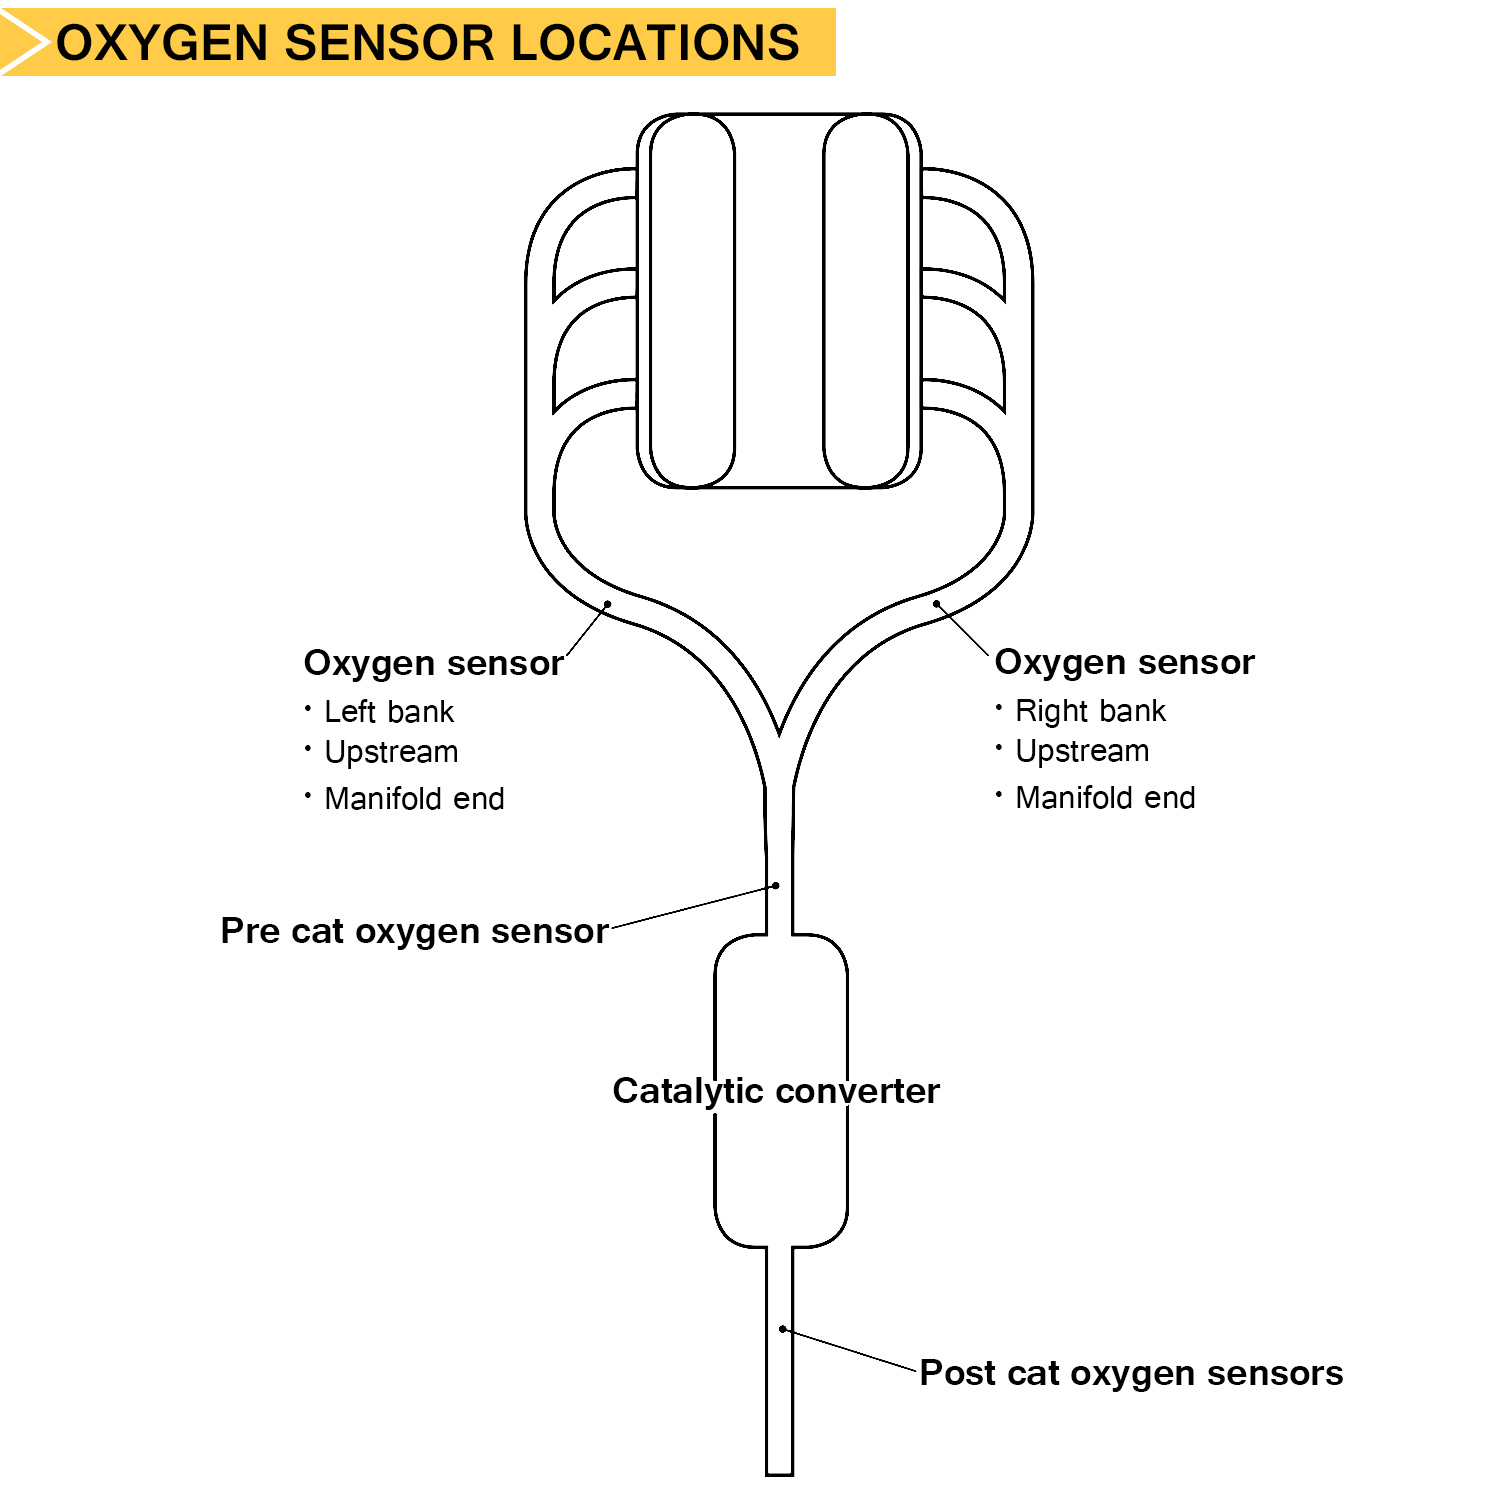 Lincoln Oxygen Sensor Location Diagram - Get Rid Of Wiring Diagram